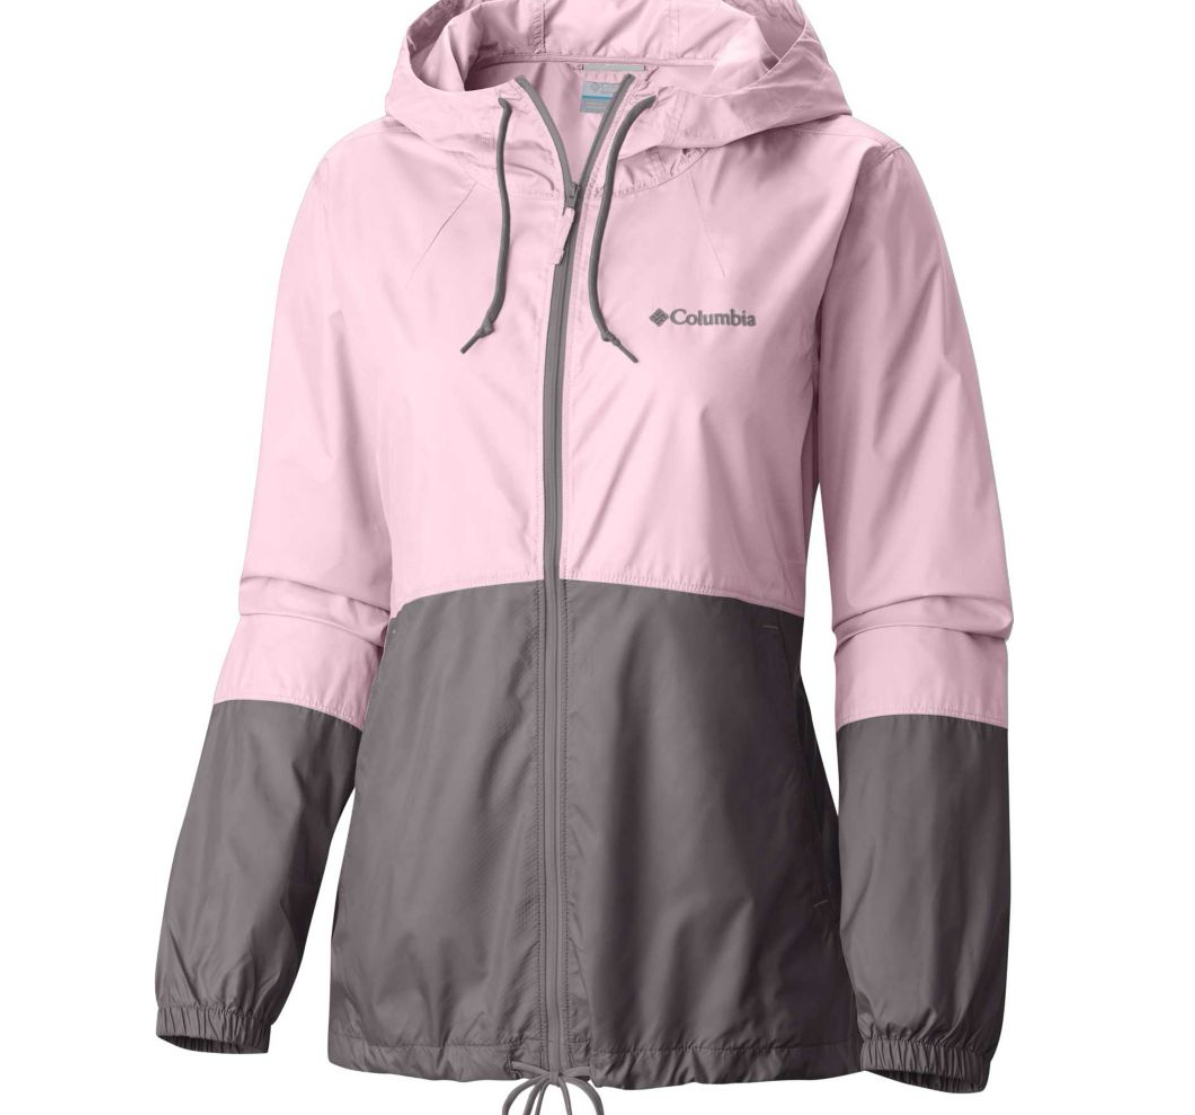 Dick's Sporting Goods: Up to 50% Off Select Outerwear